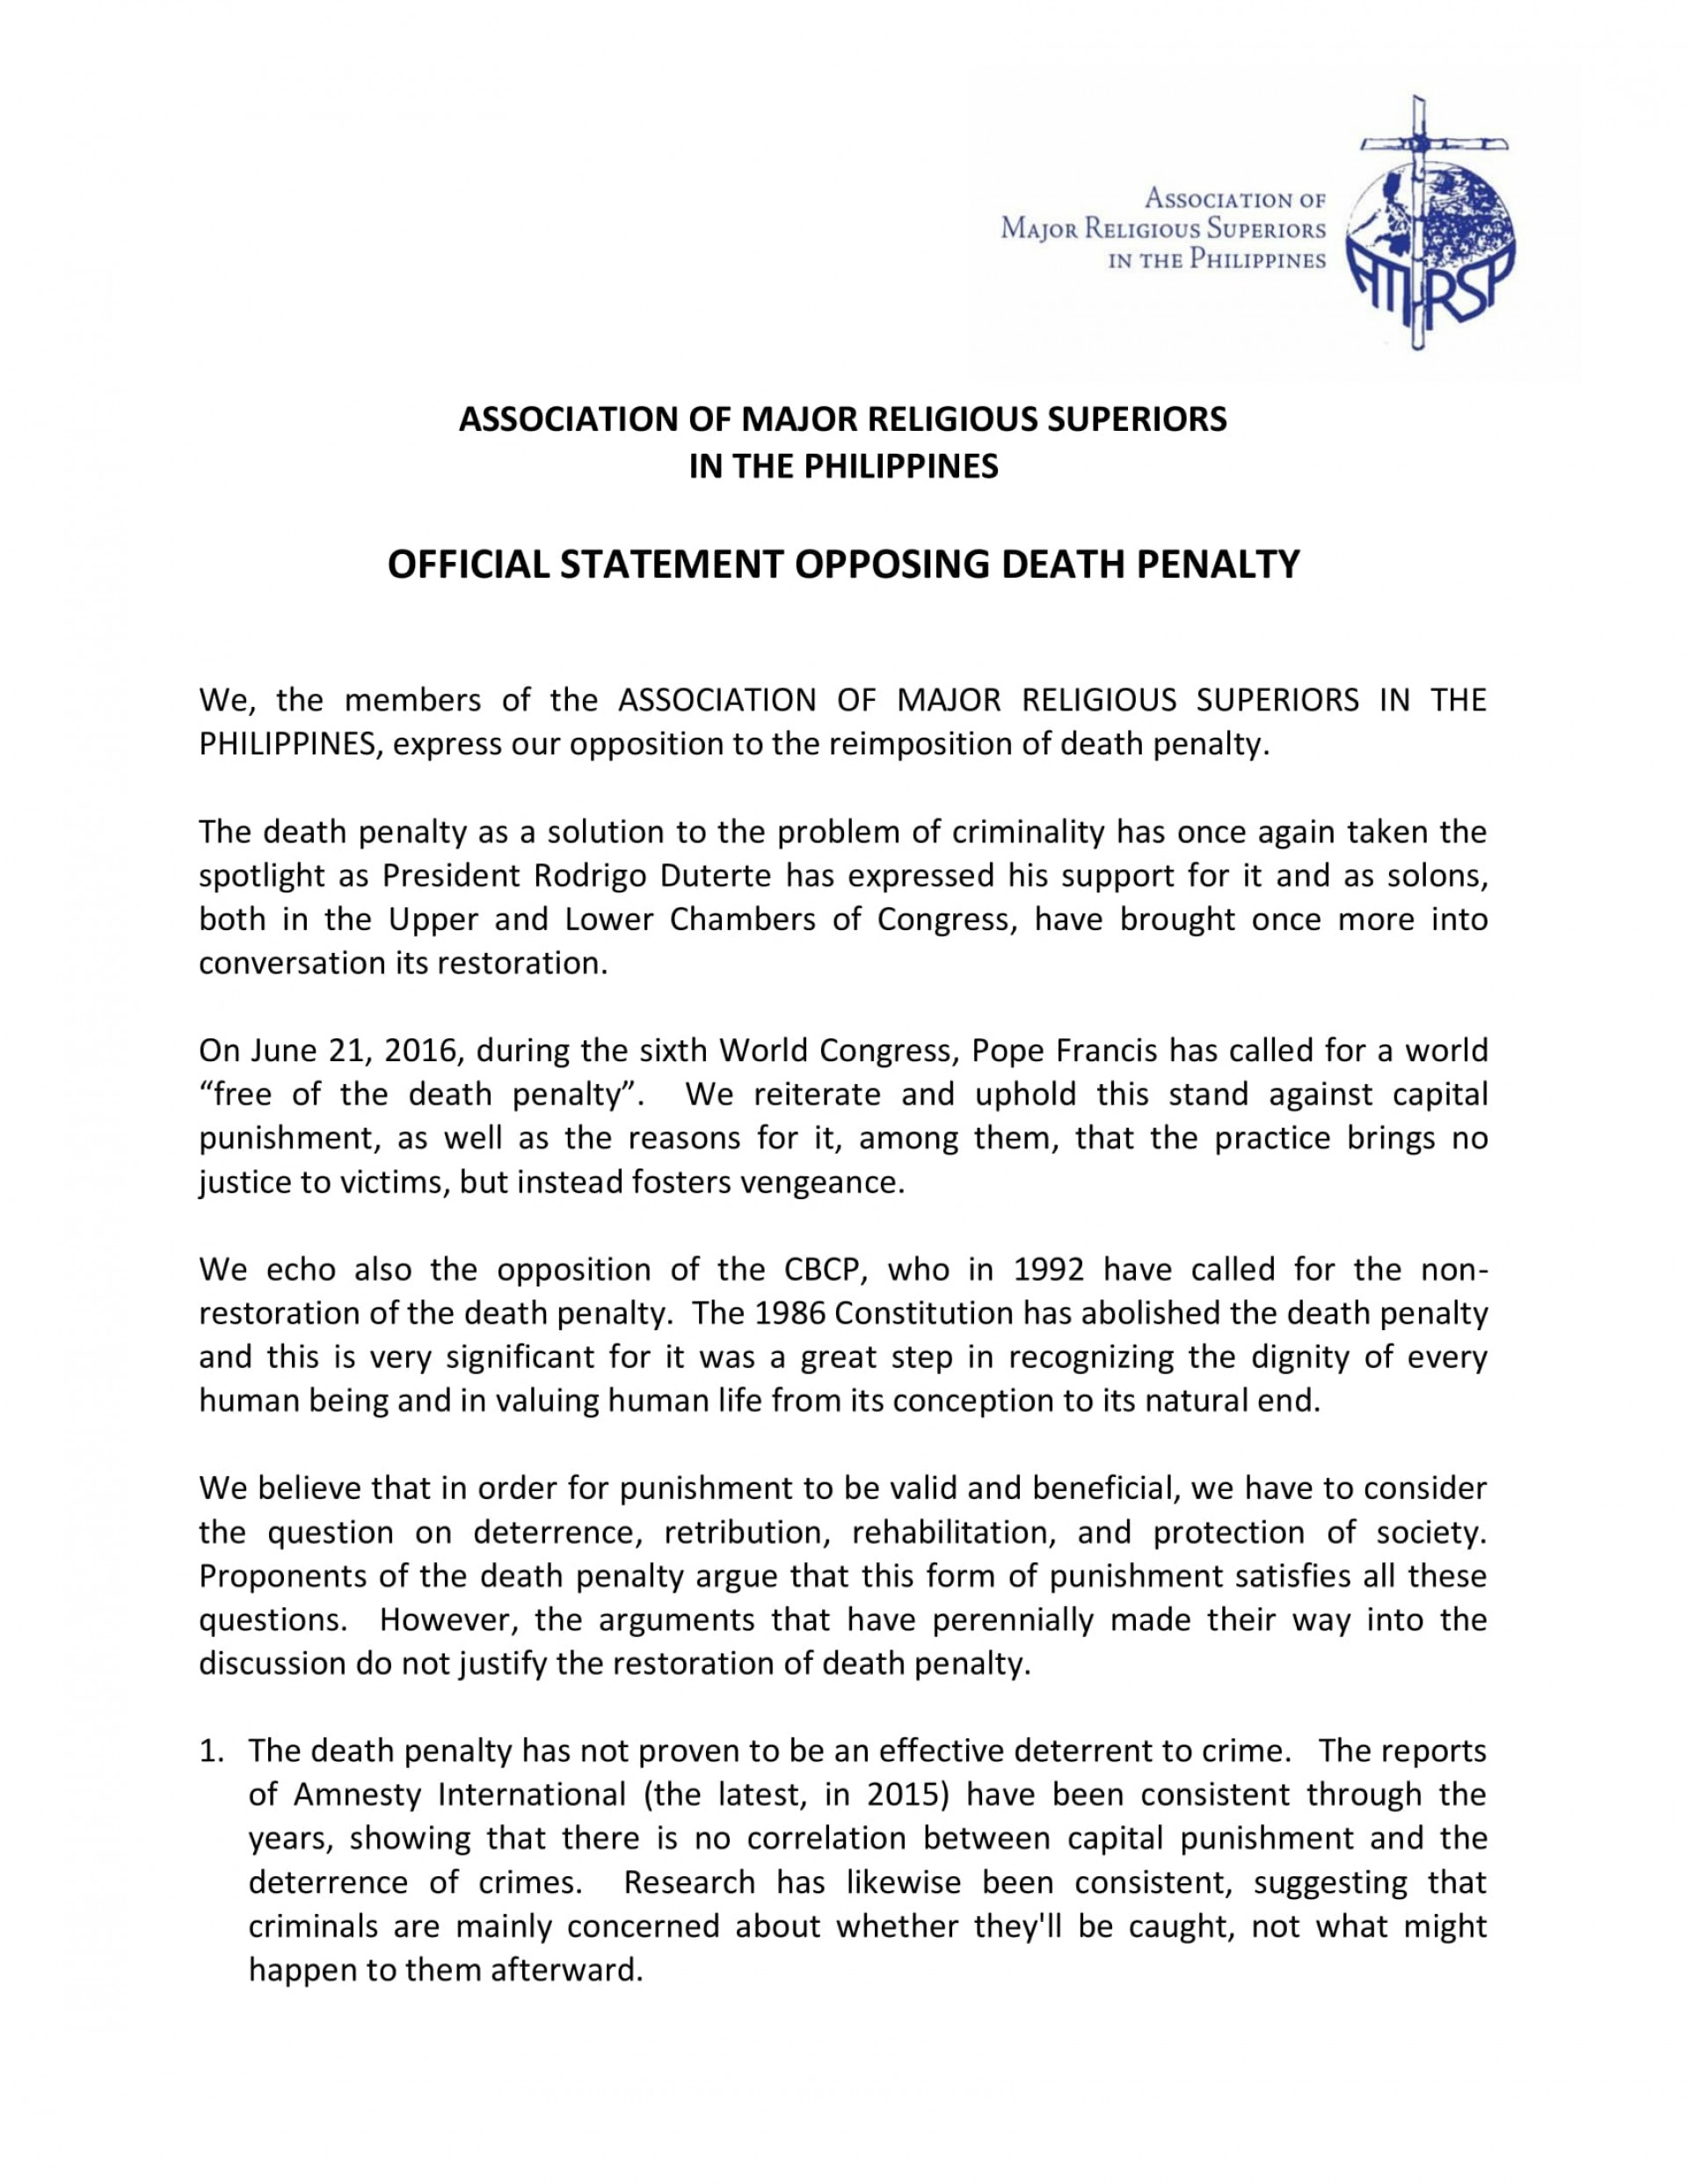 006 Essay Example Amrsp Message Statement Against Death Penalty On Is The Unusual Effective Argumentative 1920